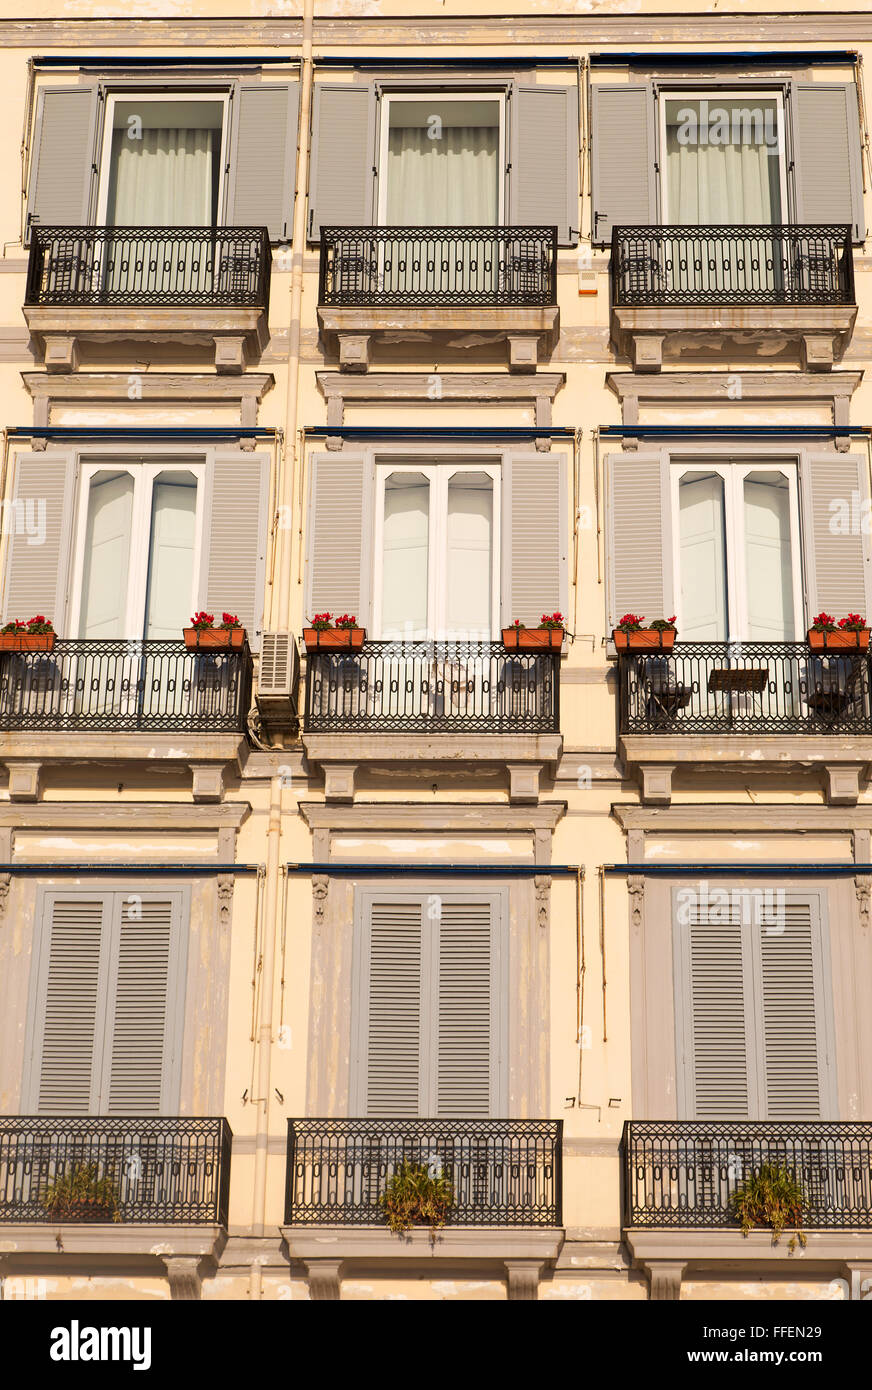 Symmetric balconies of a Liberty syle building - Stock Image